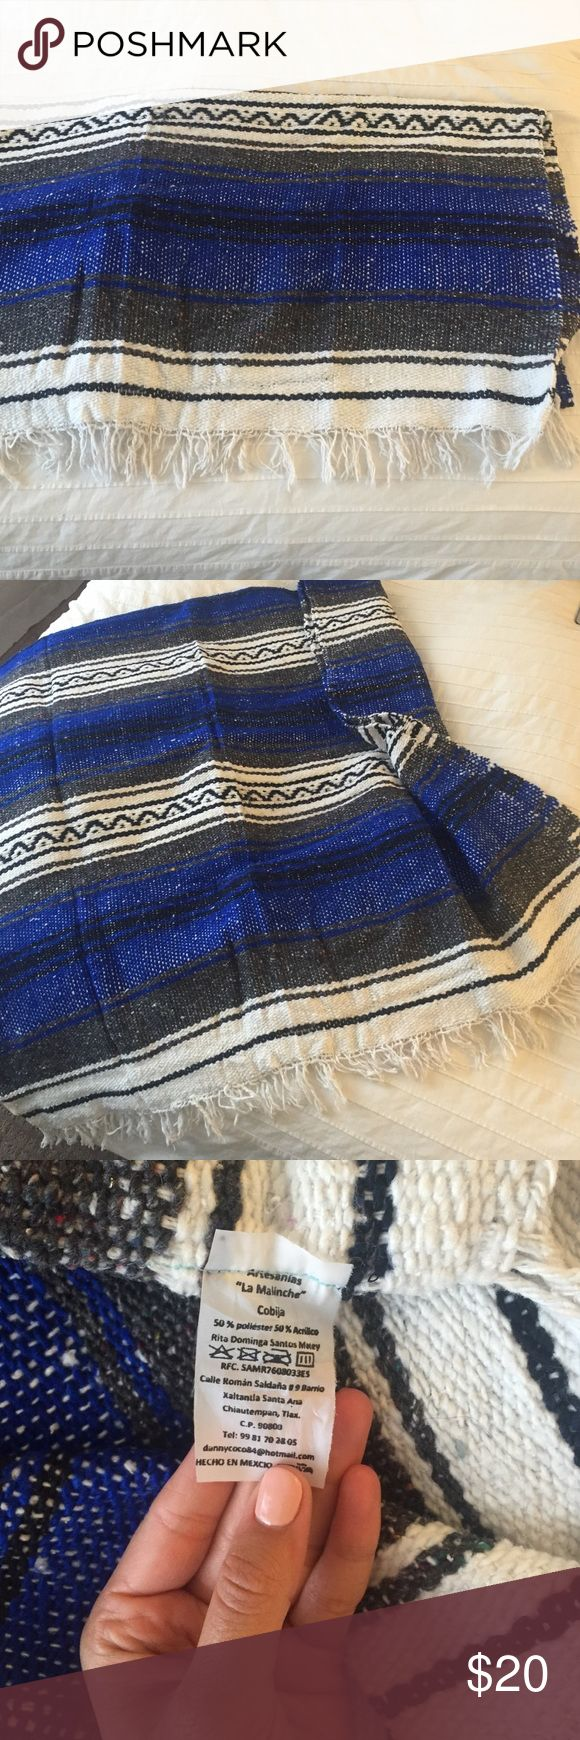 """Mexican blanket Brand new blue Mexican blanket. Around 60"""" x 38"""" love these Mexican blankets for anything, picnics, lay at the beach or to just cuddle with. Other"""